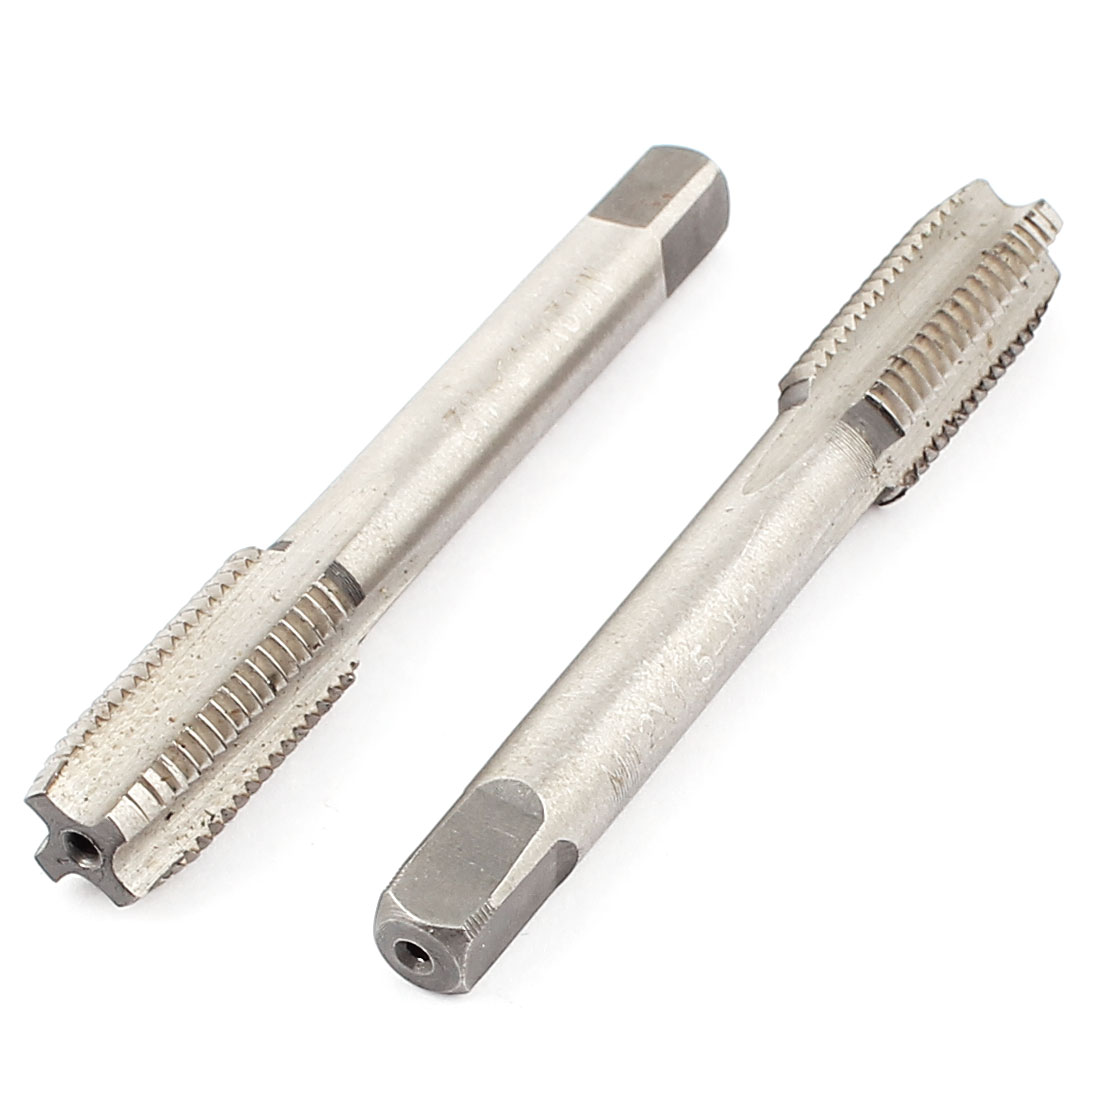 M12x1.5mm Straight 4 Flutes Metric Bottoming Taper Hand Taps 2pcs